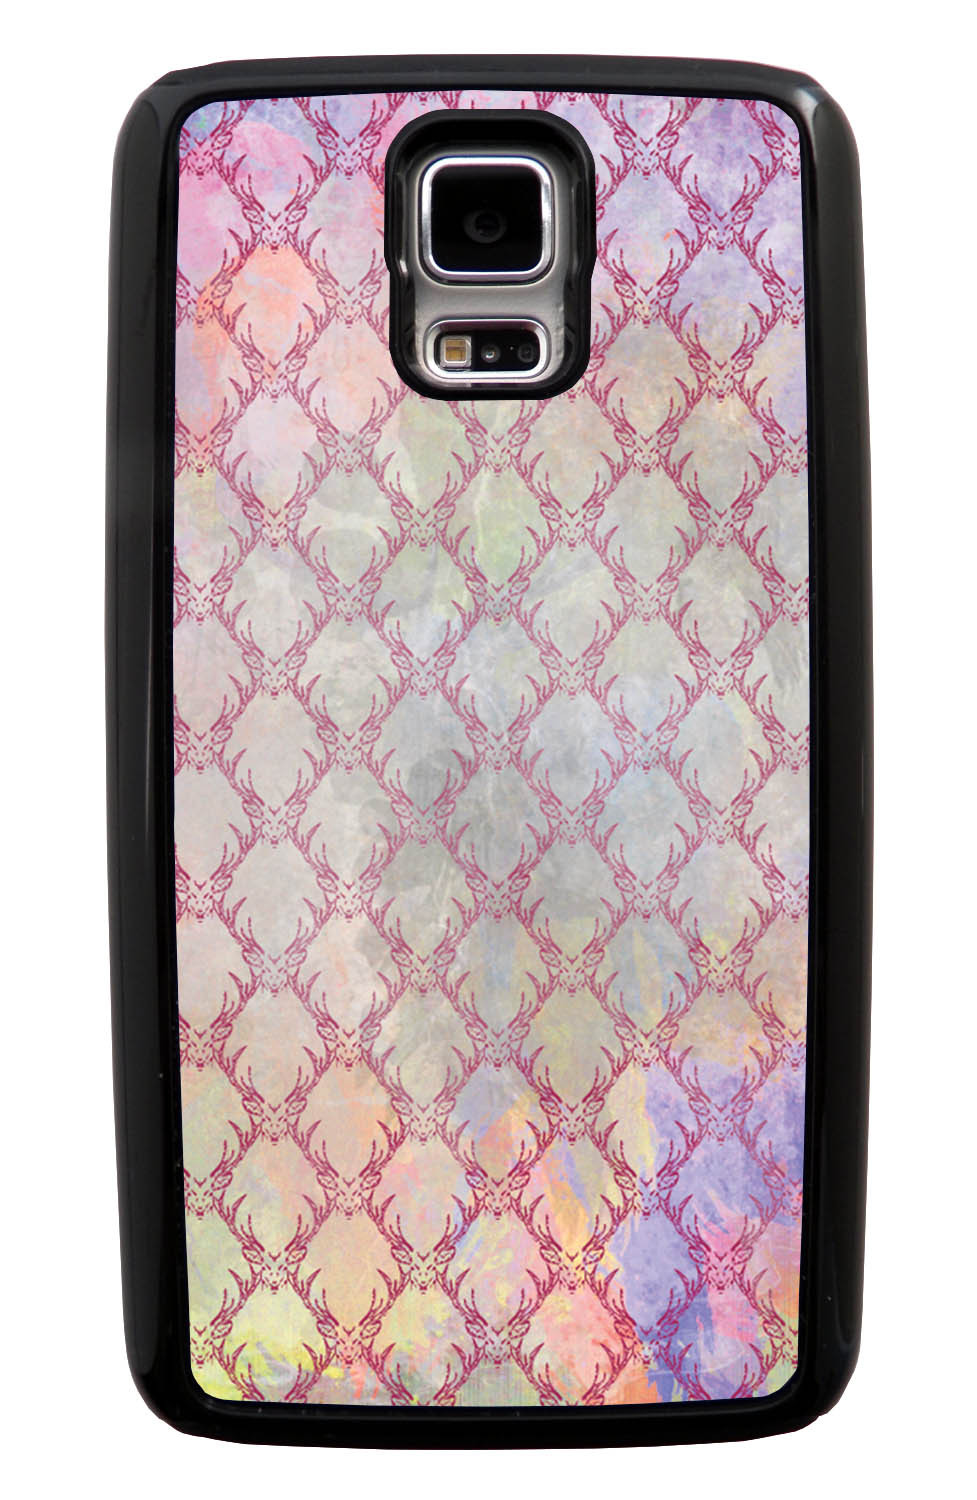 Samsung Galaxy S5 / SV Deer Case - Color Splash with Deer Mount Pattern Overlay - Picture - Black Tough Hybrid Case